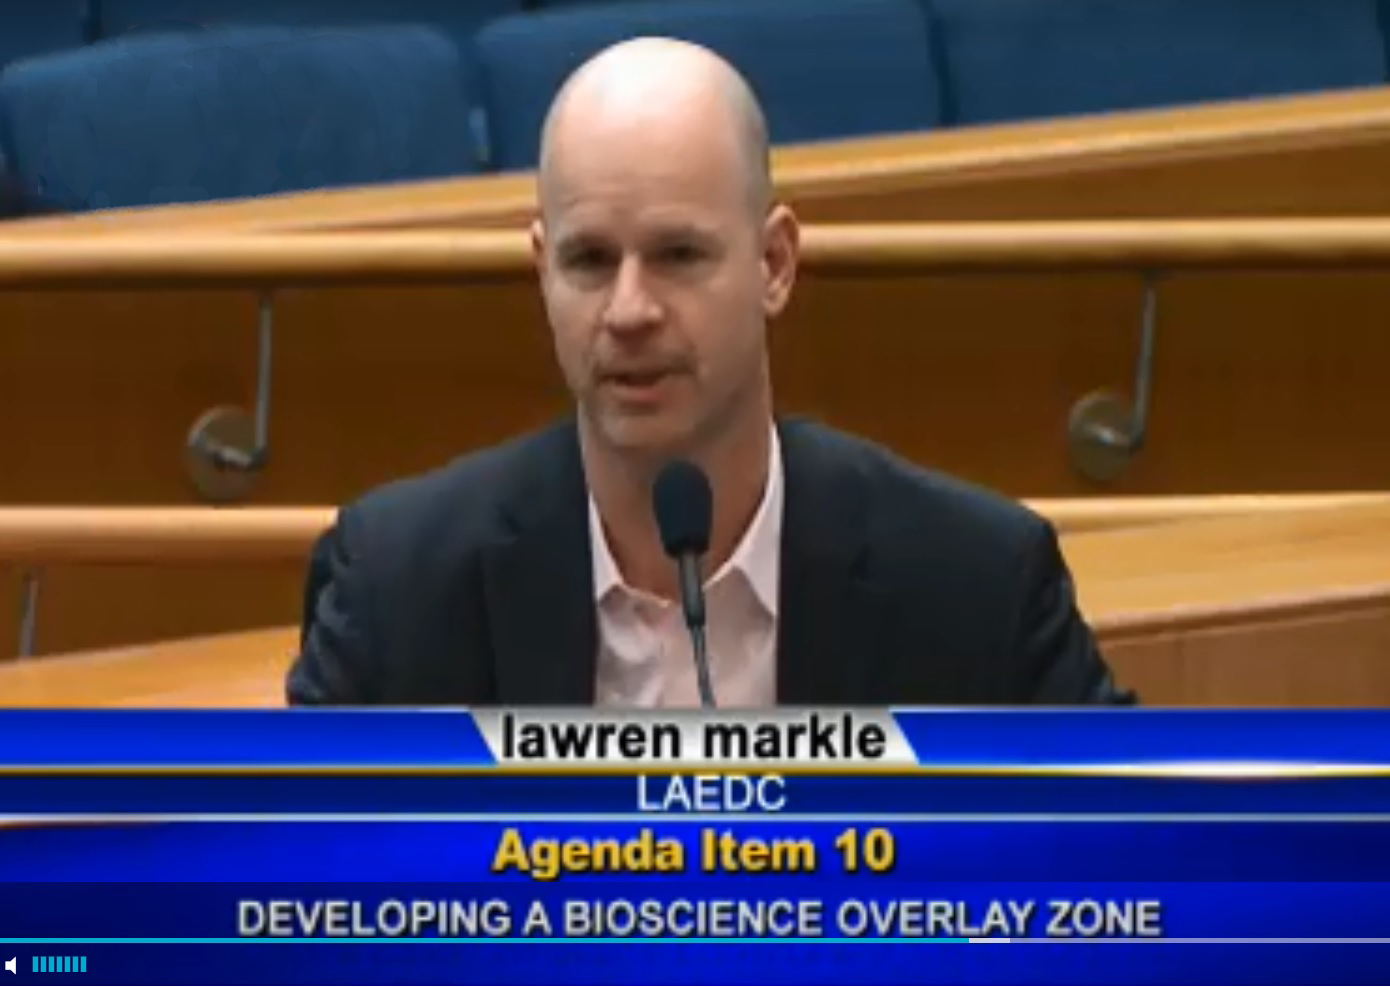 LAEDC continues to support living-wage jobs in bioscience via support for Overlay Zones